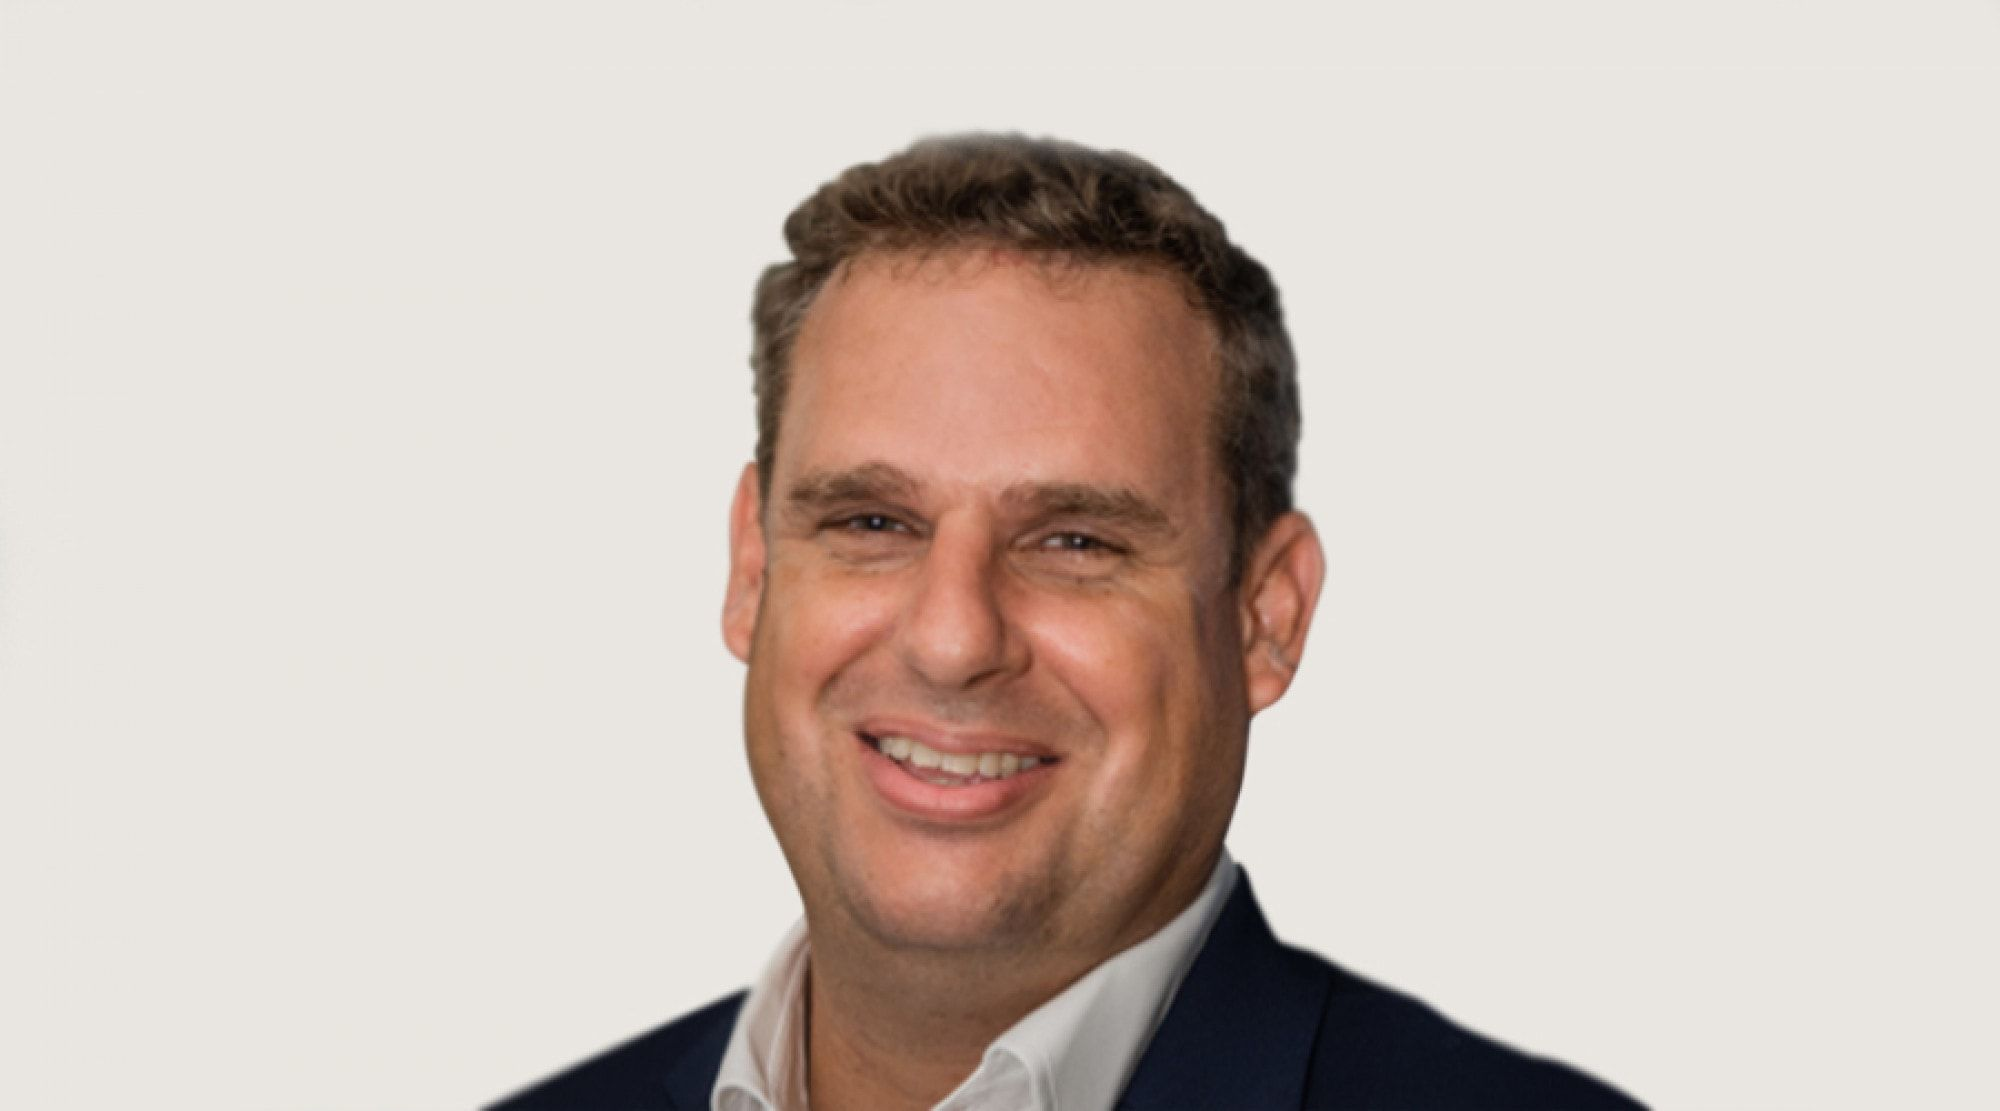 SCC's National Sales Director makes the CRN A-List